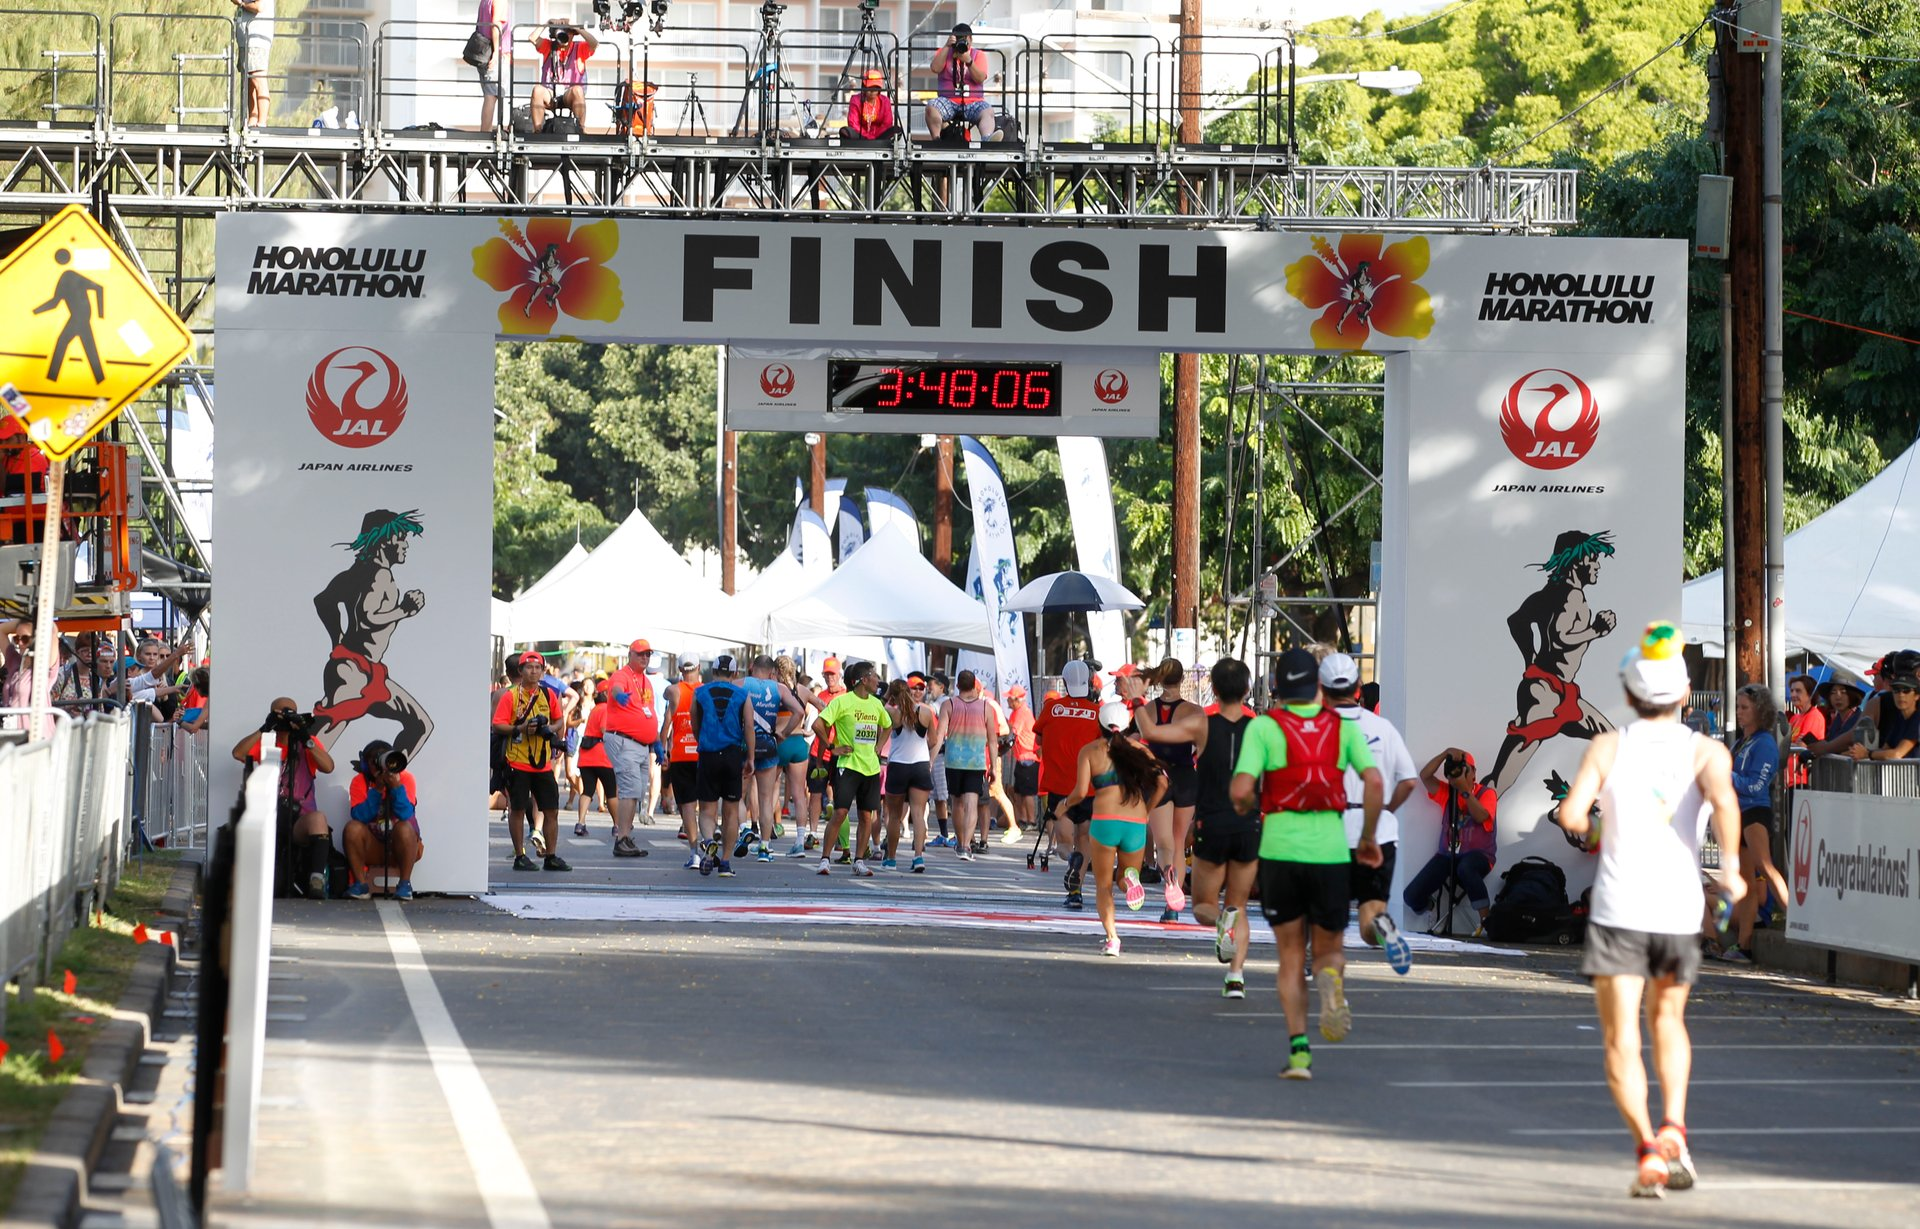 Best time to see Honolulu Marathon in Hawaii 2020